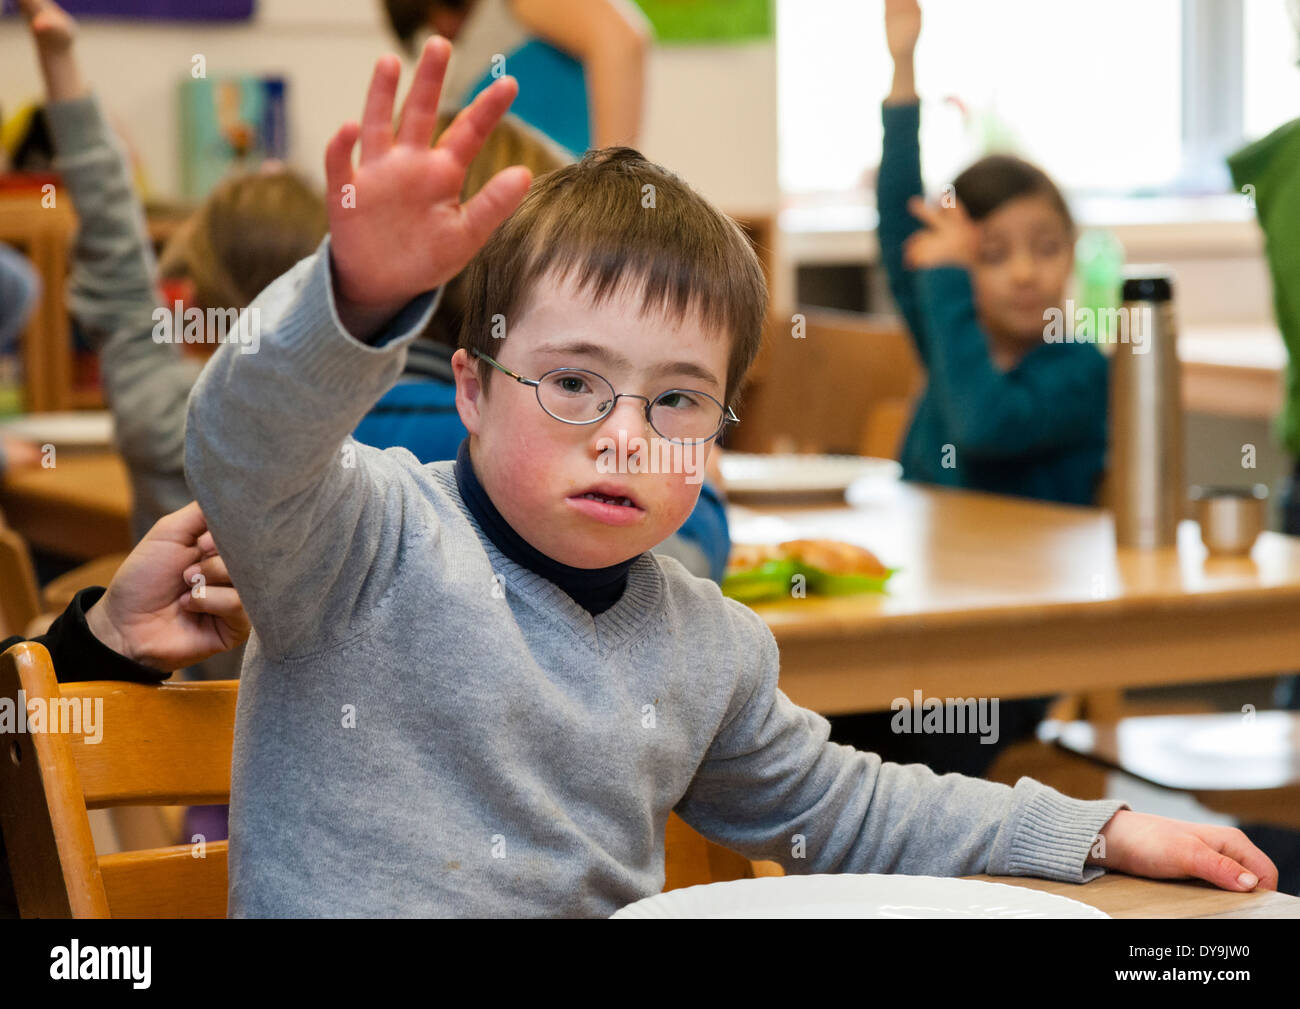 Non-disabled and disabled pupils (in this case a boy suffering from Down's syndrome) learn together in the same class. - Stock Image